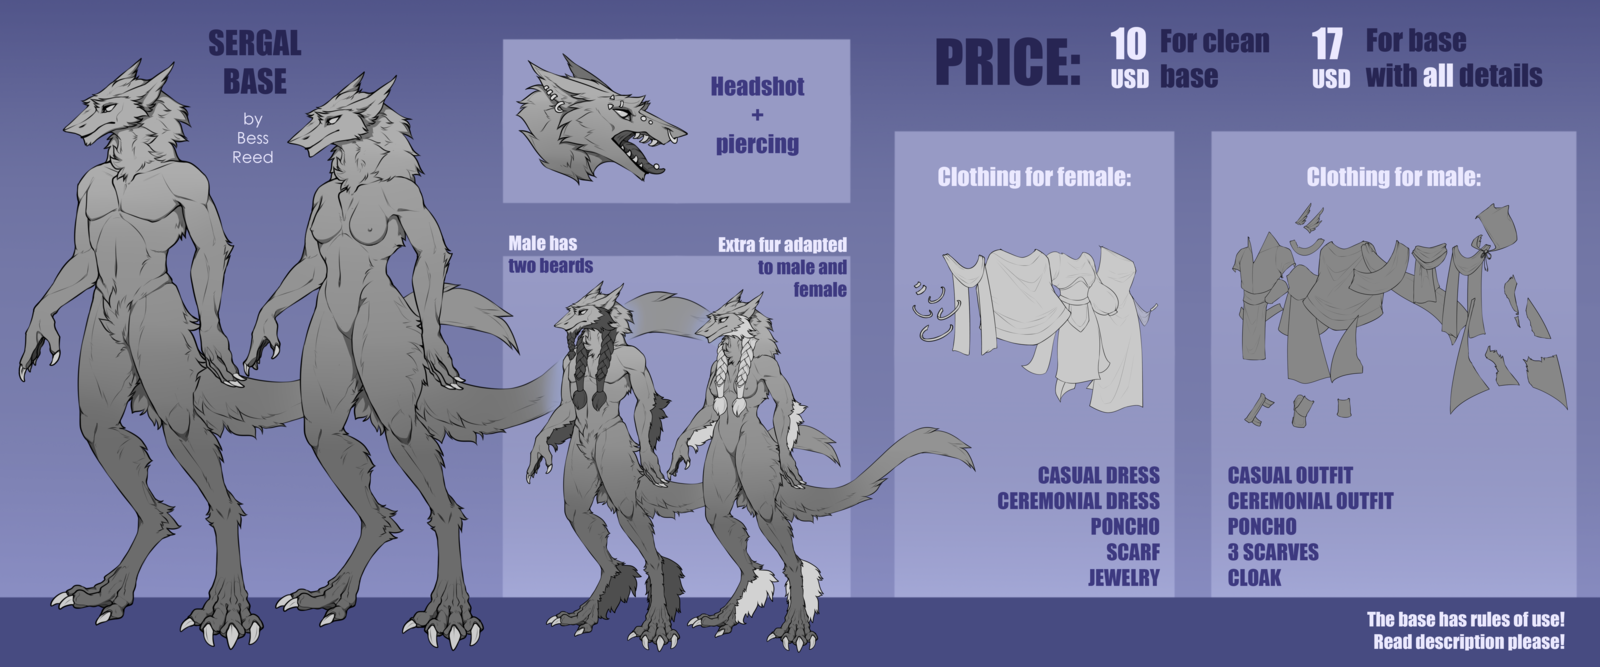 P2U Sergal Base} PRICE REDUCED: 7$ or 13$!!! by BessReed